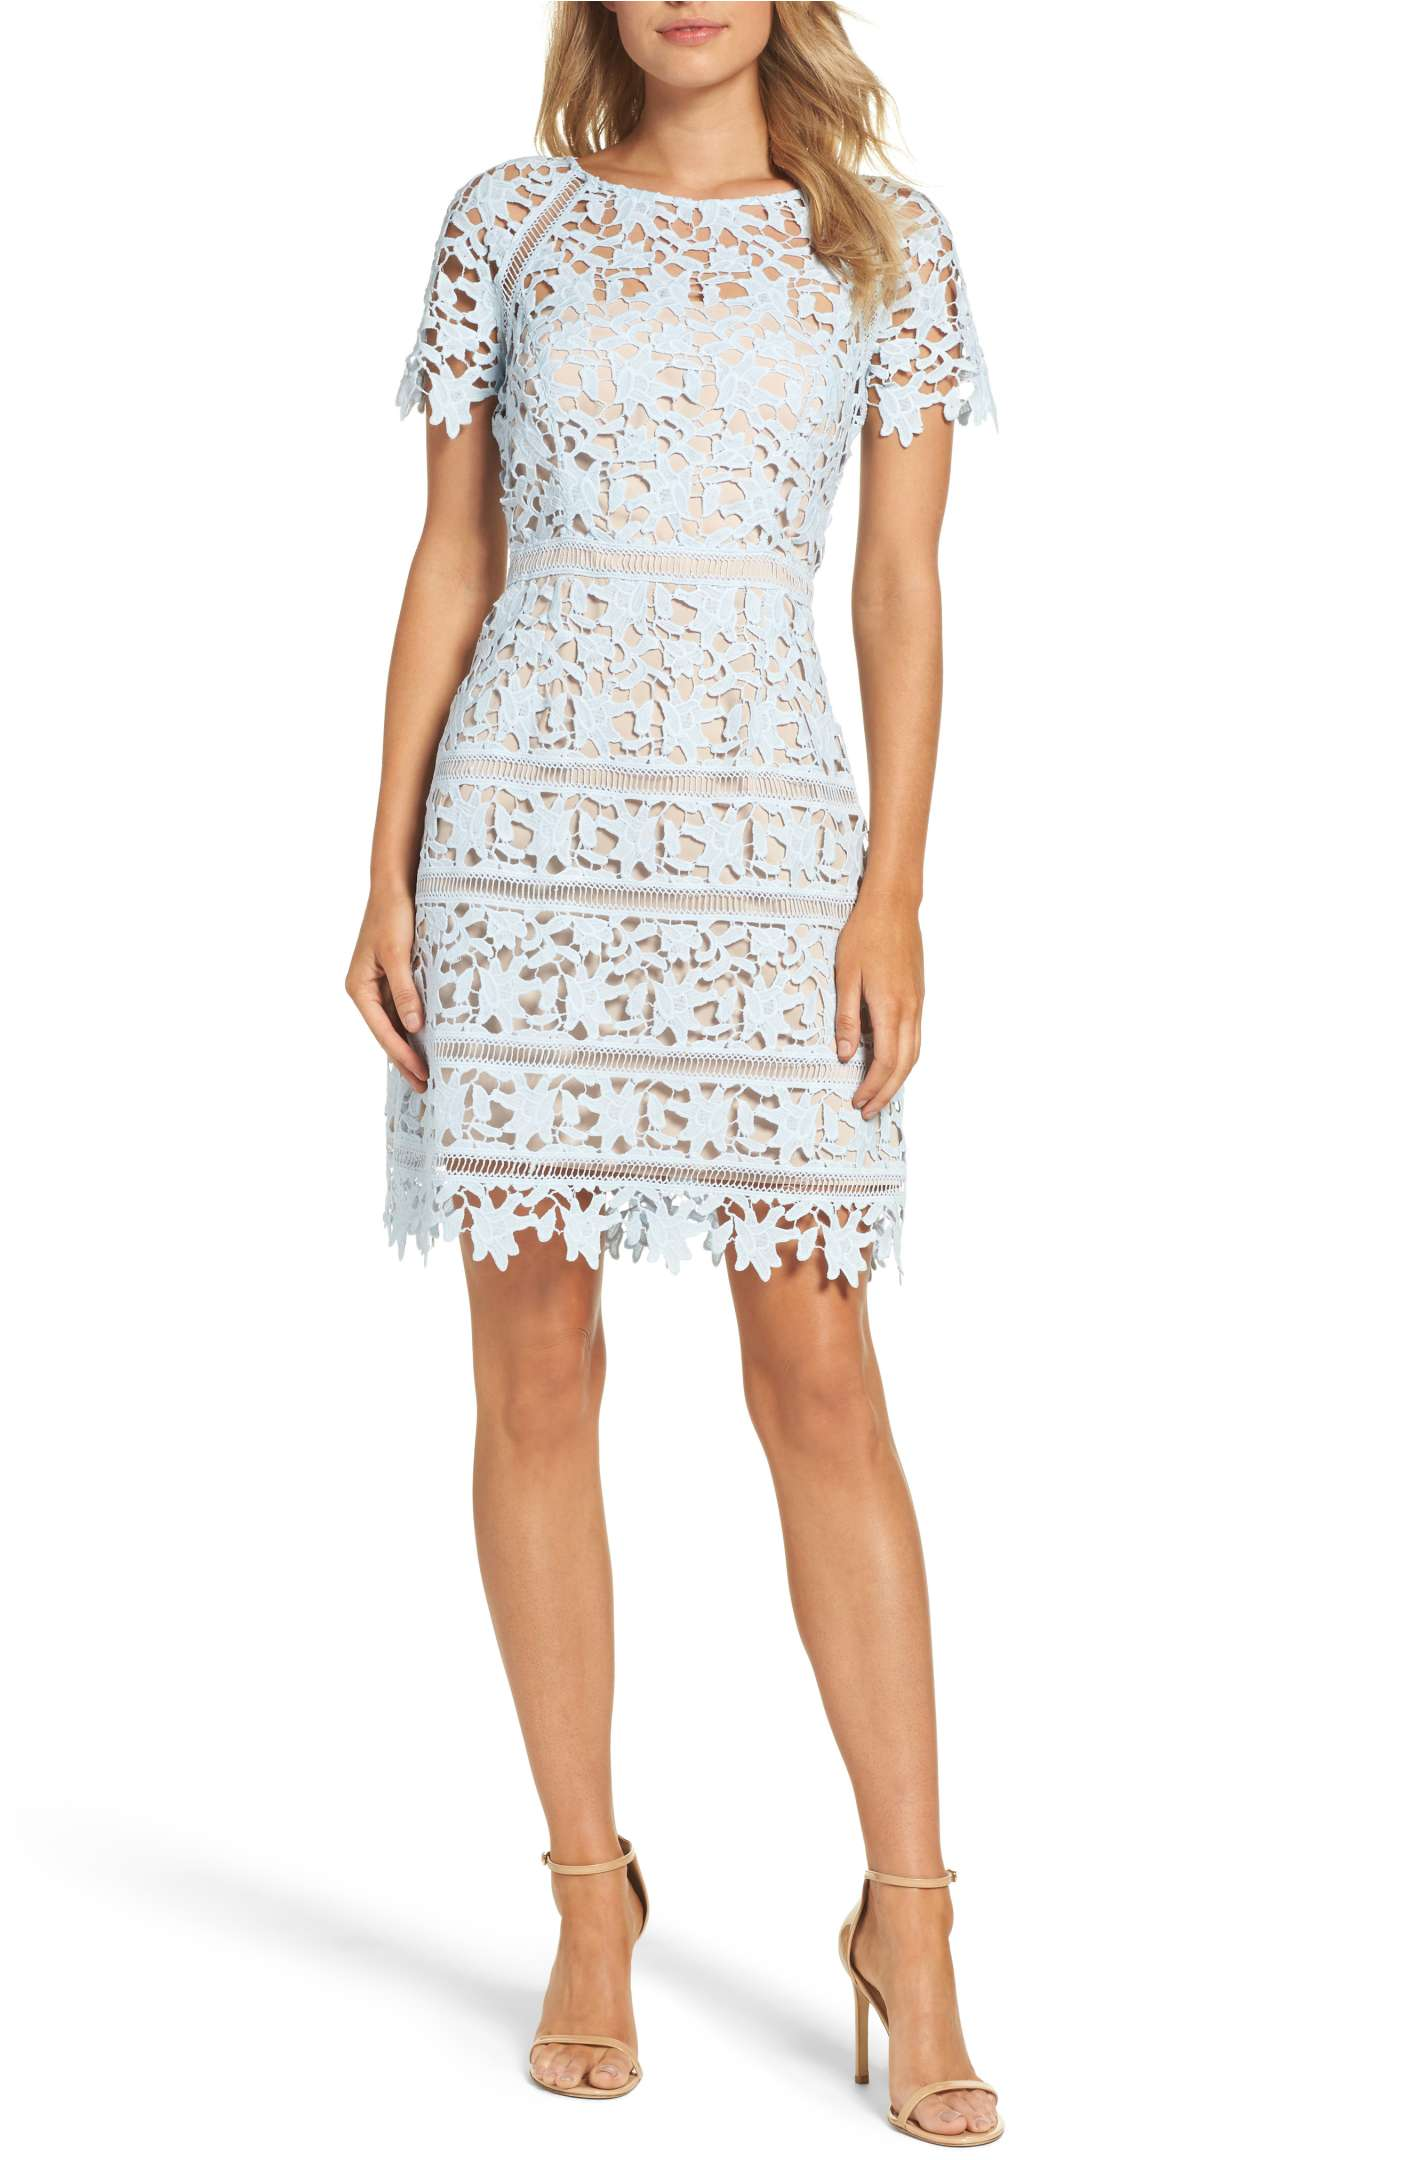 Crochet Dress  by Eliza J $178, Sizes 2-16